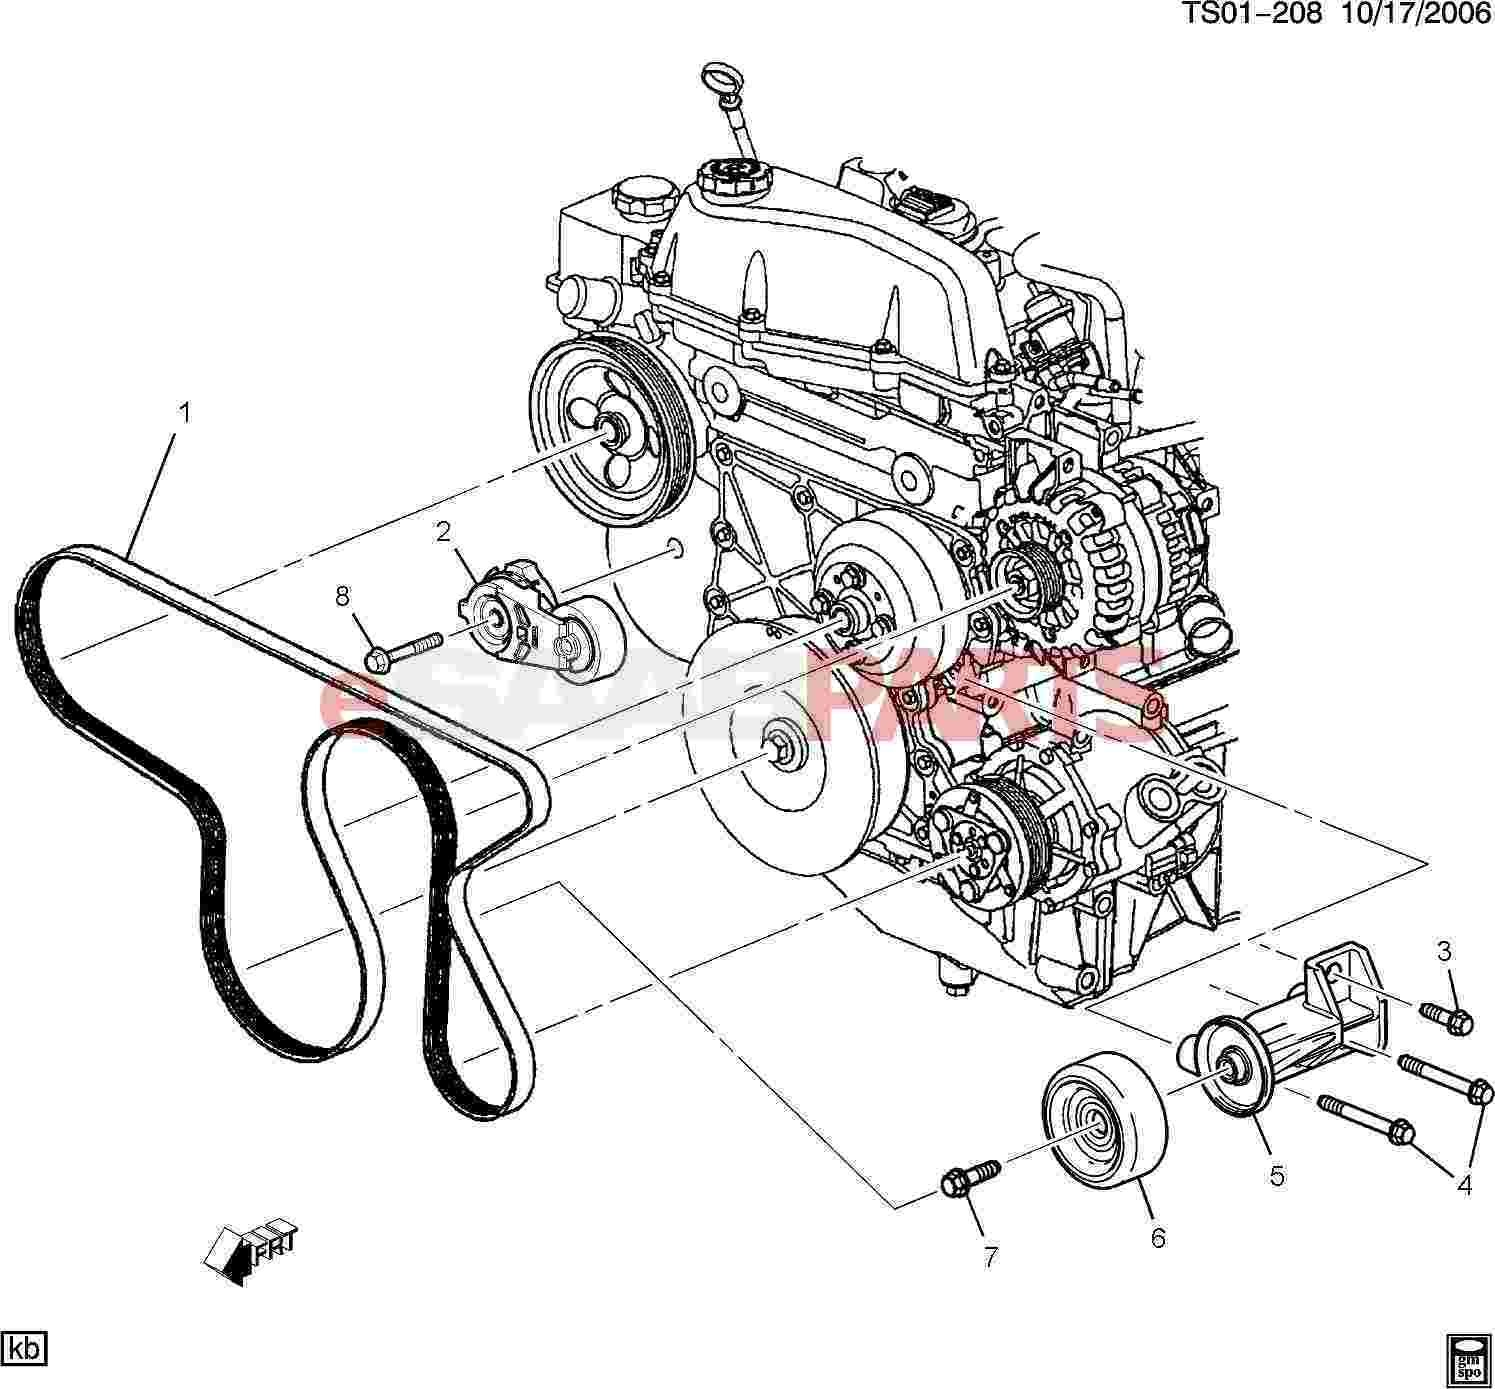 [WRG-7792] 2005 Gmc Sierra Engine Diagram